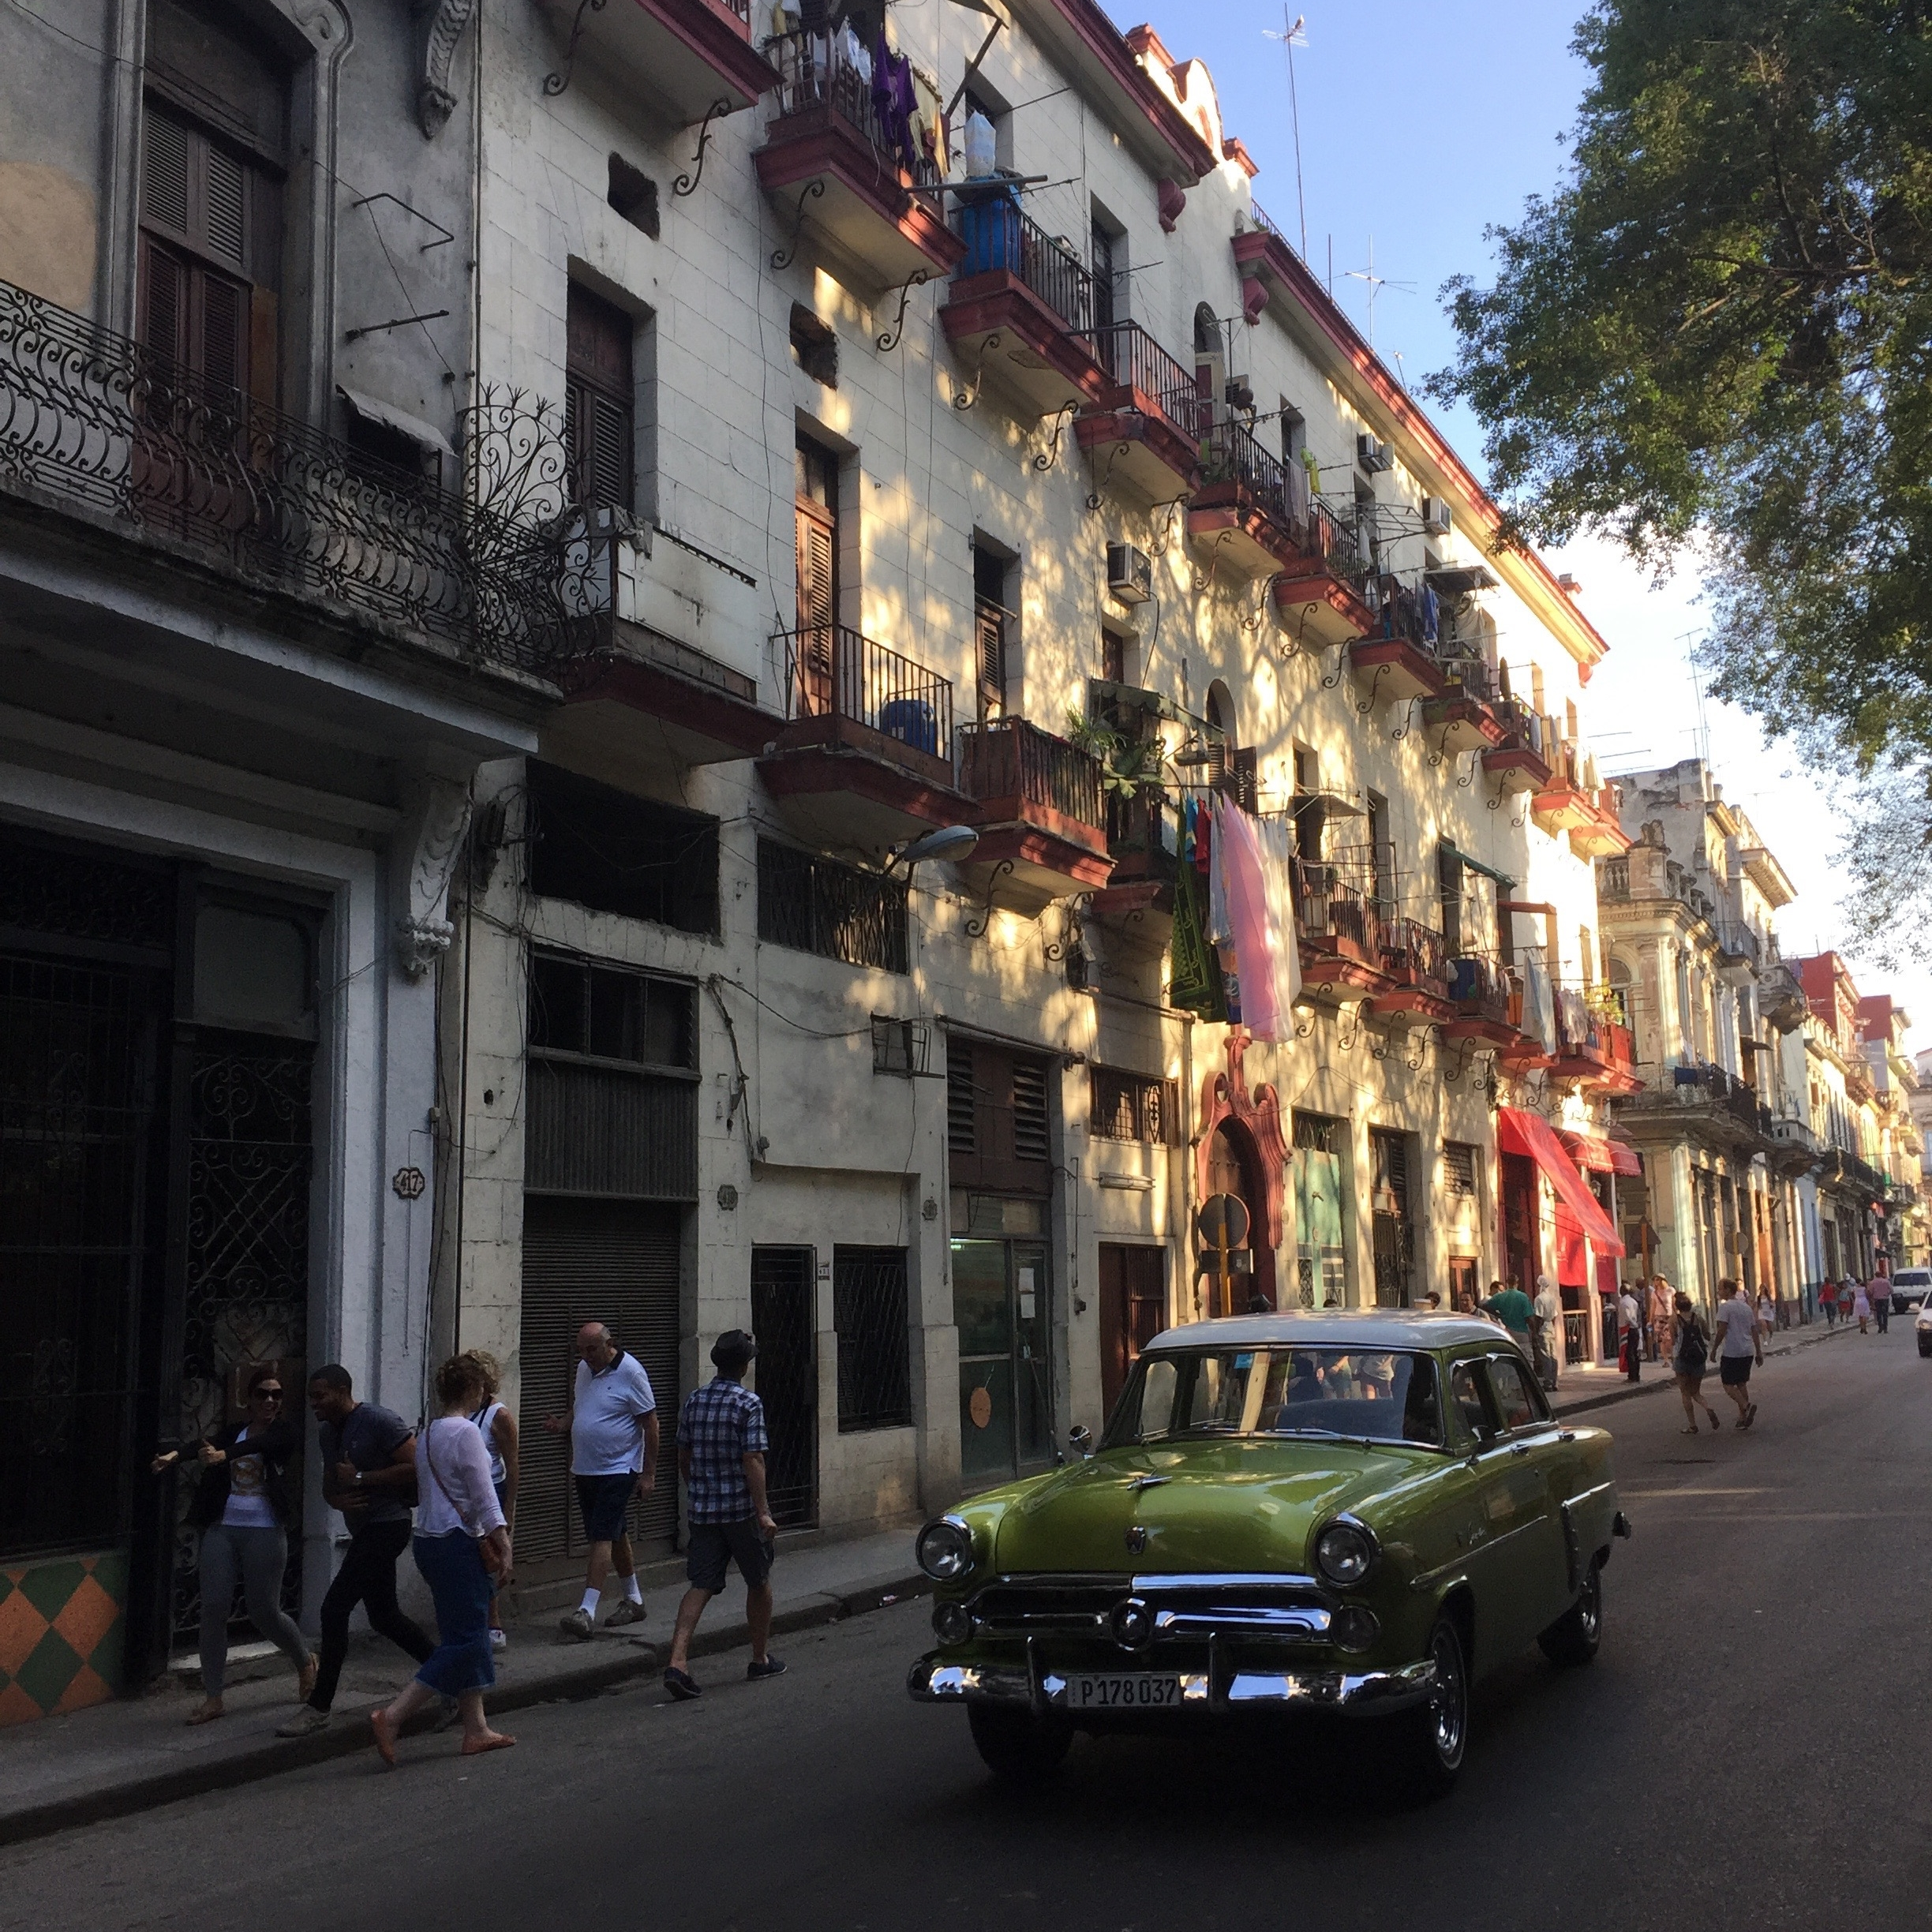 Cars in Havana by Eleanor Currier for The Doubtful Traveller